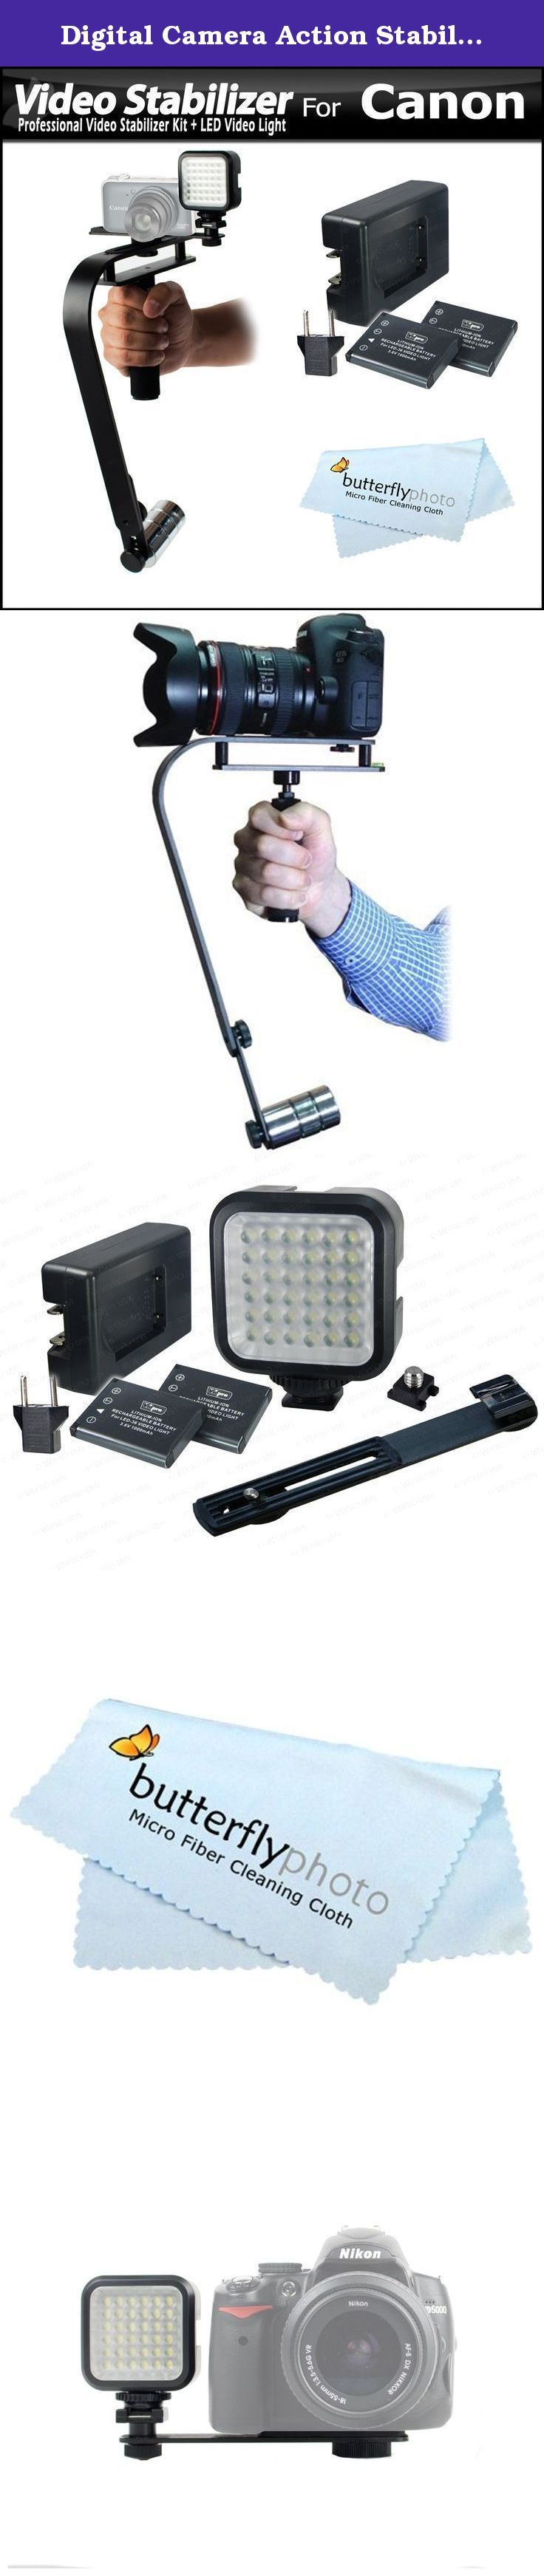 Digital Camera Action Stabilizer Handle + Deluxe LED Light Kit For Canon Powershot G1 X, Mark II, G16, G15, SX60 HS, SX50, SX40, SX700, SX600, SX170 IS, SX530 HS, SX540 HS, G3 X, G1X Mark II, G7 X Camera. Kit Includes: 1) Vidpro - Professional Video Camcorder & Digital SLR Camera Stabilizer 2) Vidpro - LED-36 Deluxe LED Digital Video Light Kit with Support Bracket, with Li-Ion Batteries and Charger. 3) ButterflyPhoto - Micro Fiber Cleaning Cloth The Vidpro SB-10 Video Stabilizer provides...